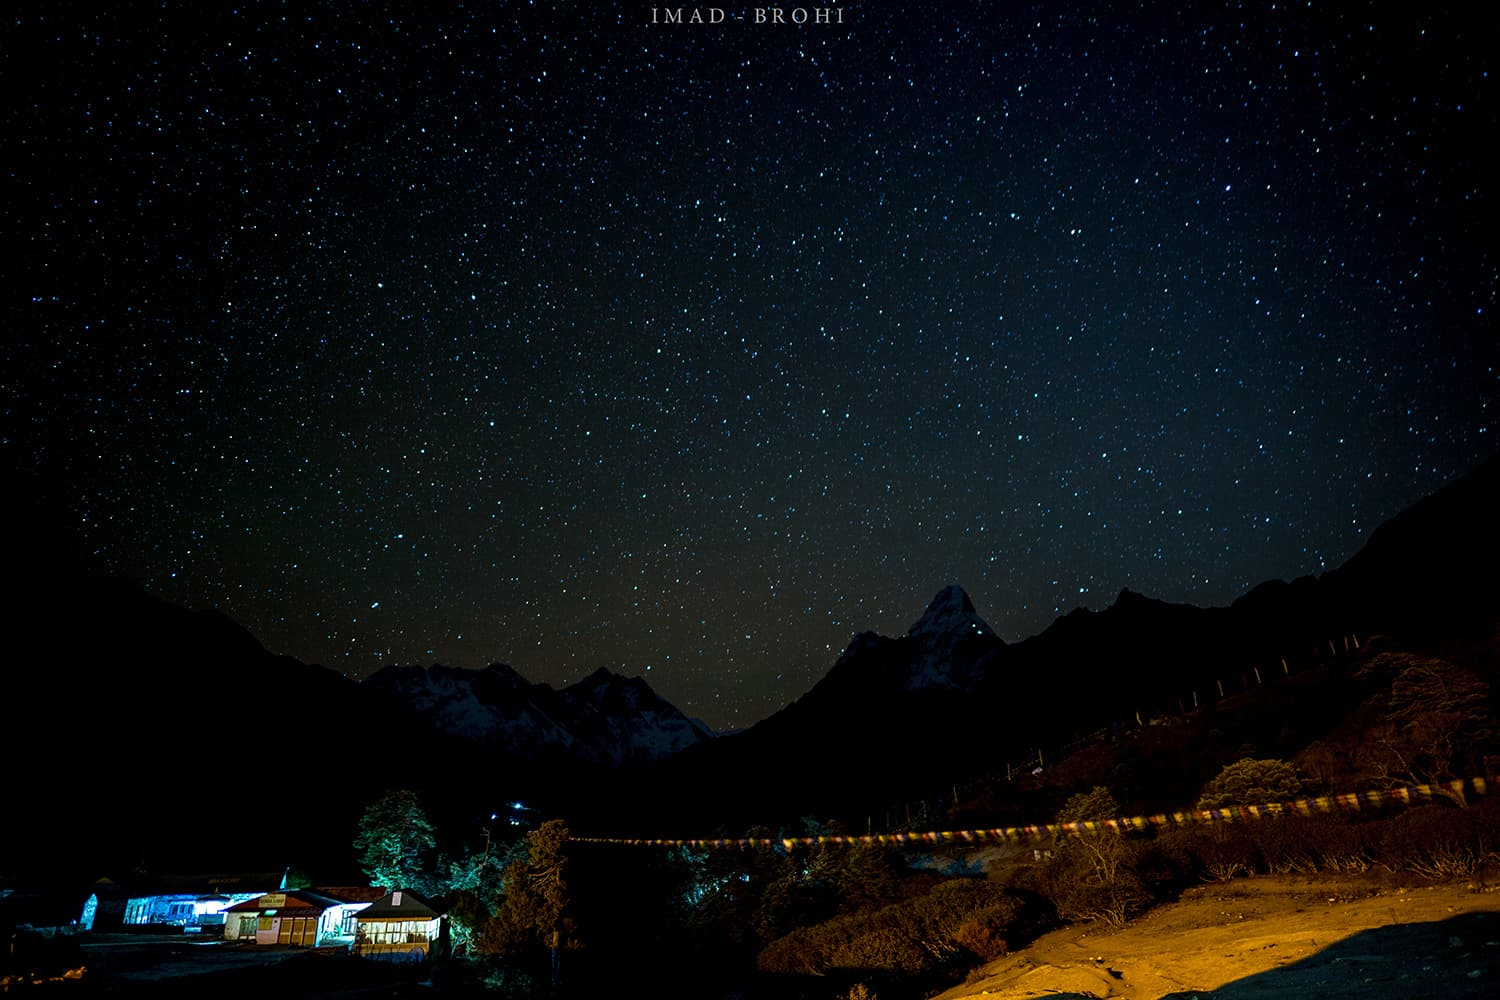 Day 5: Night falls over Tengboche. The lights on Ama Dablam are of climbers attempting to summit.